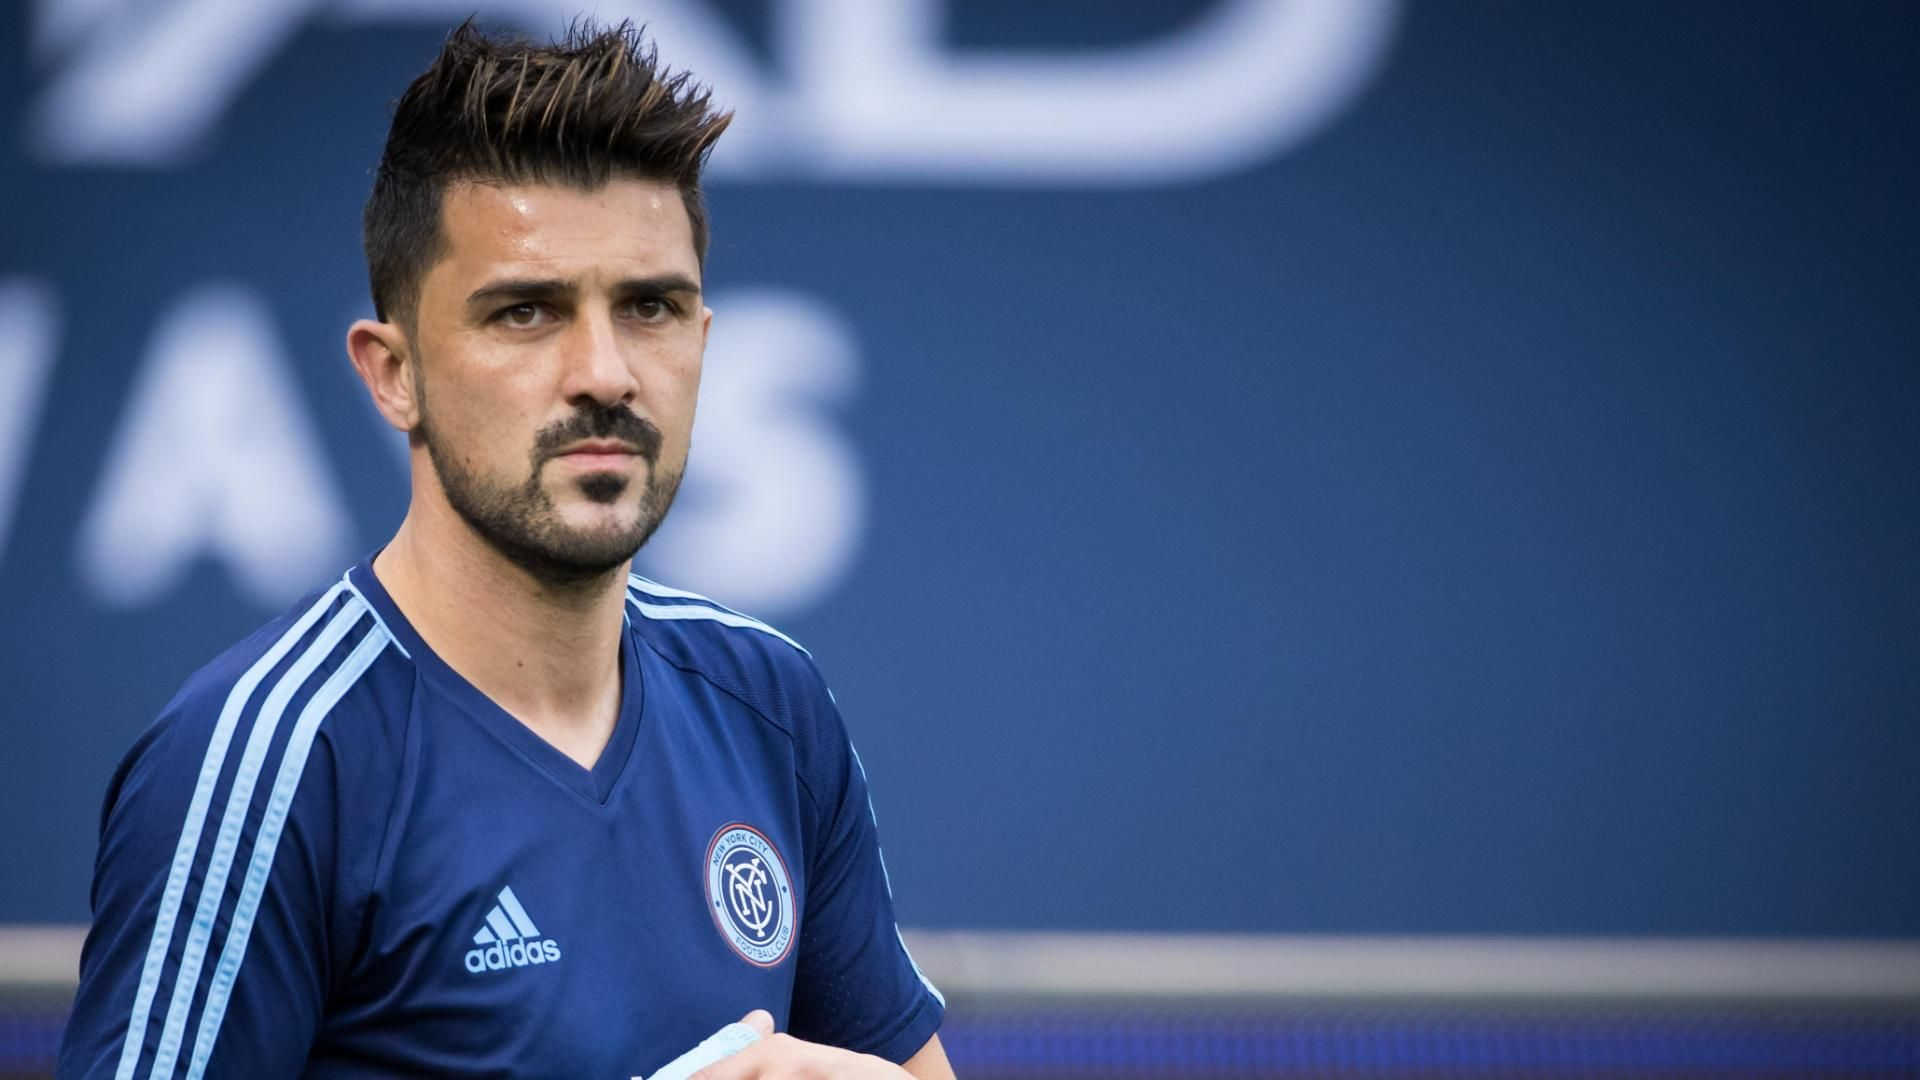 Does Villa need an MLS Cup to cement his legacy? - Via MLS